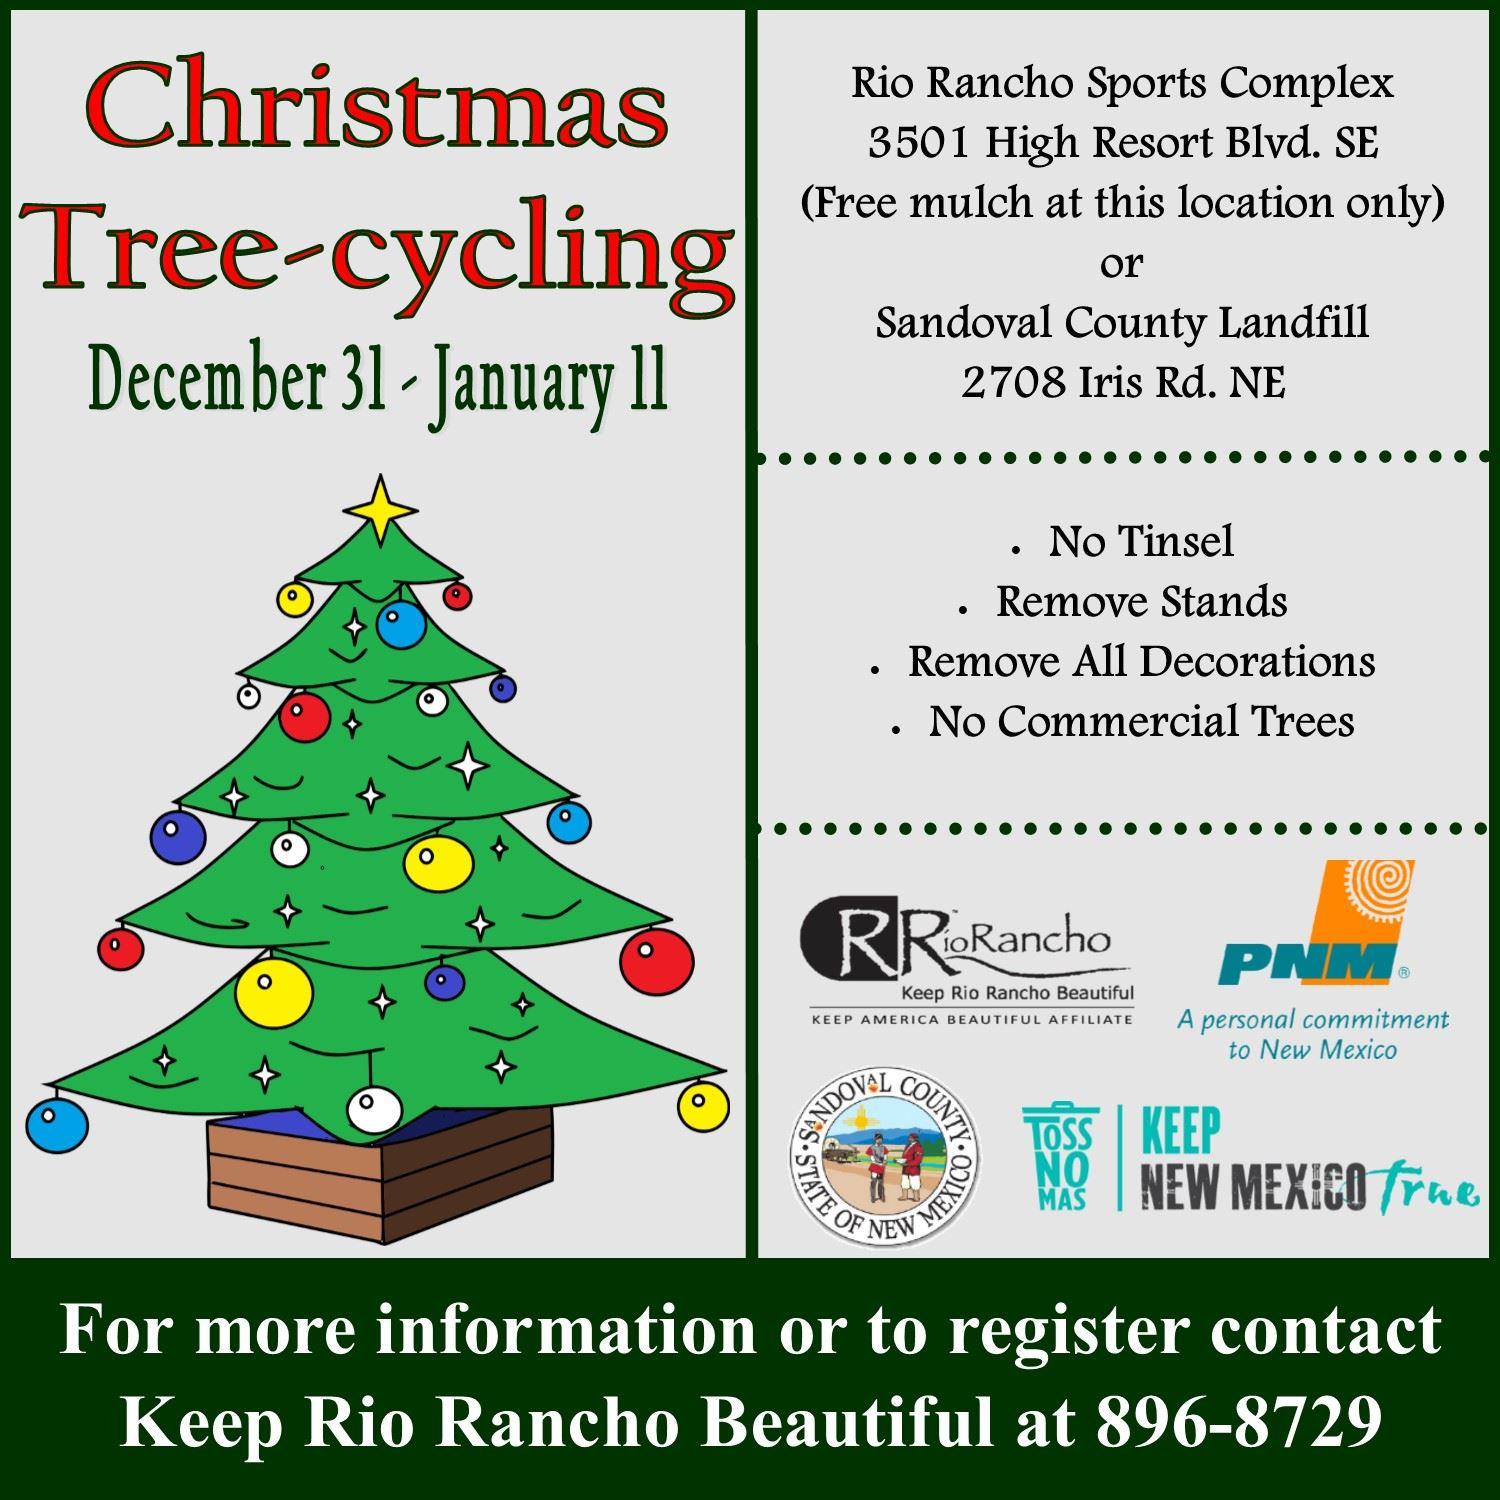 Christmas Tree Cycling The Official Site Of Rio Rancho Nm